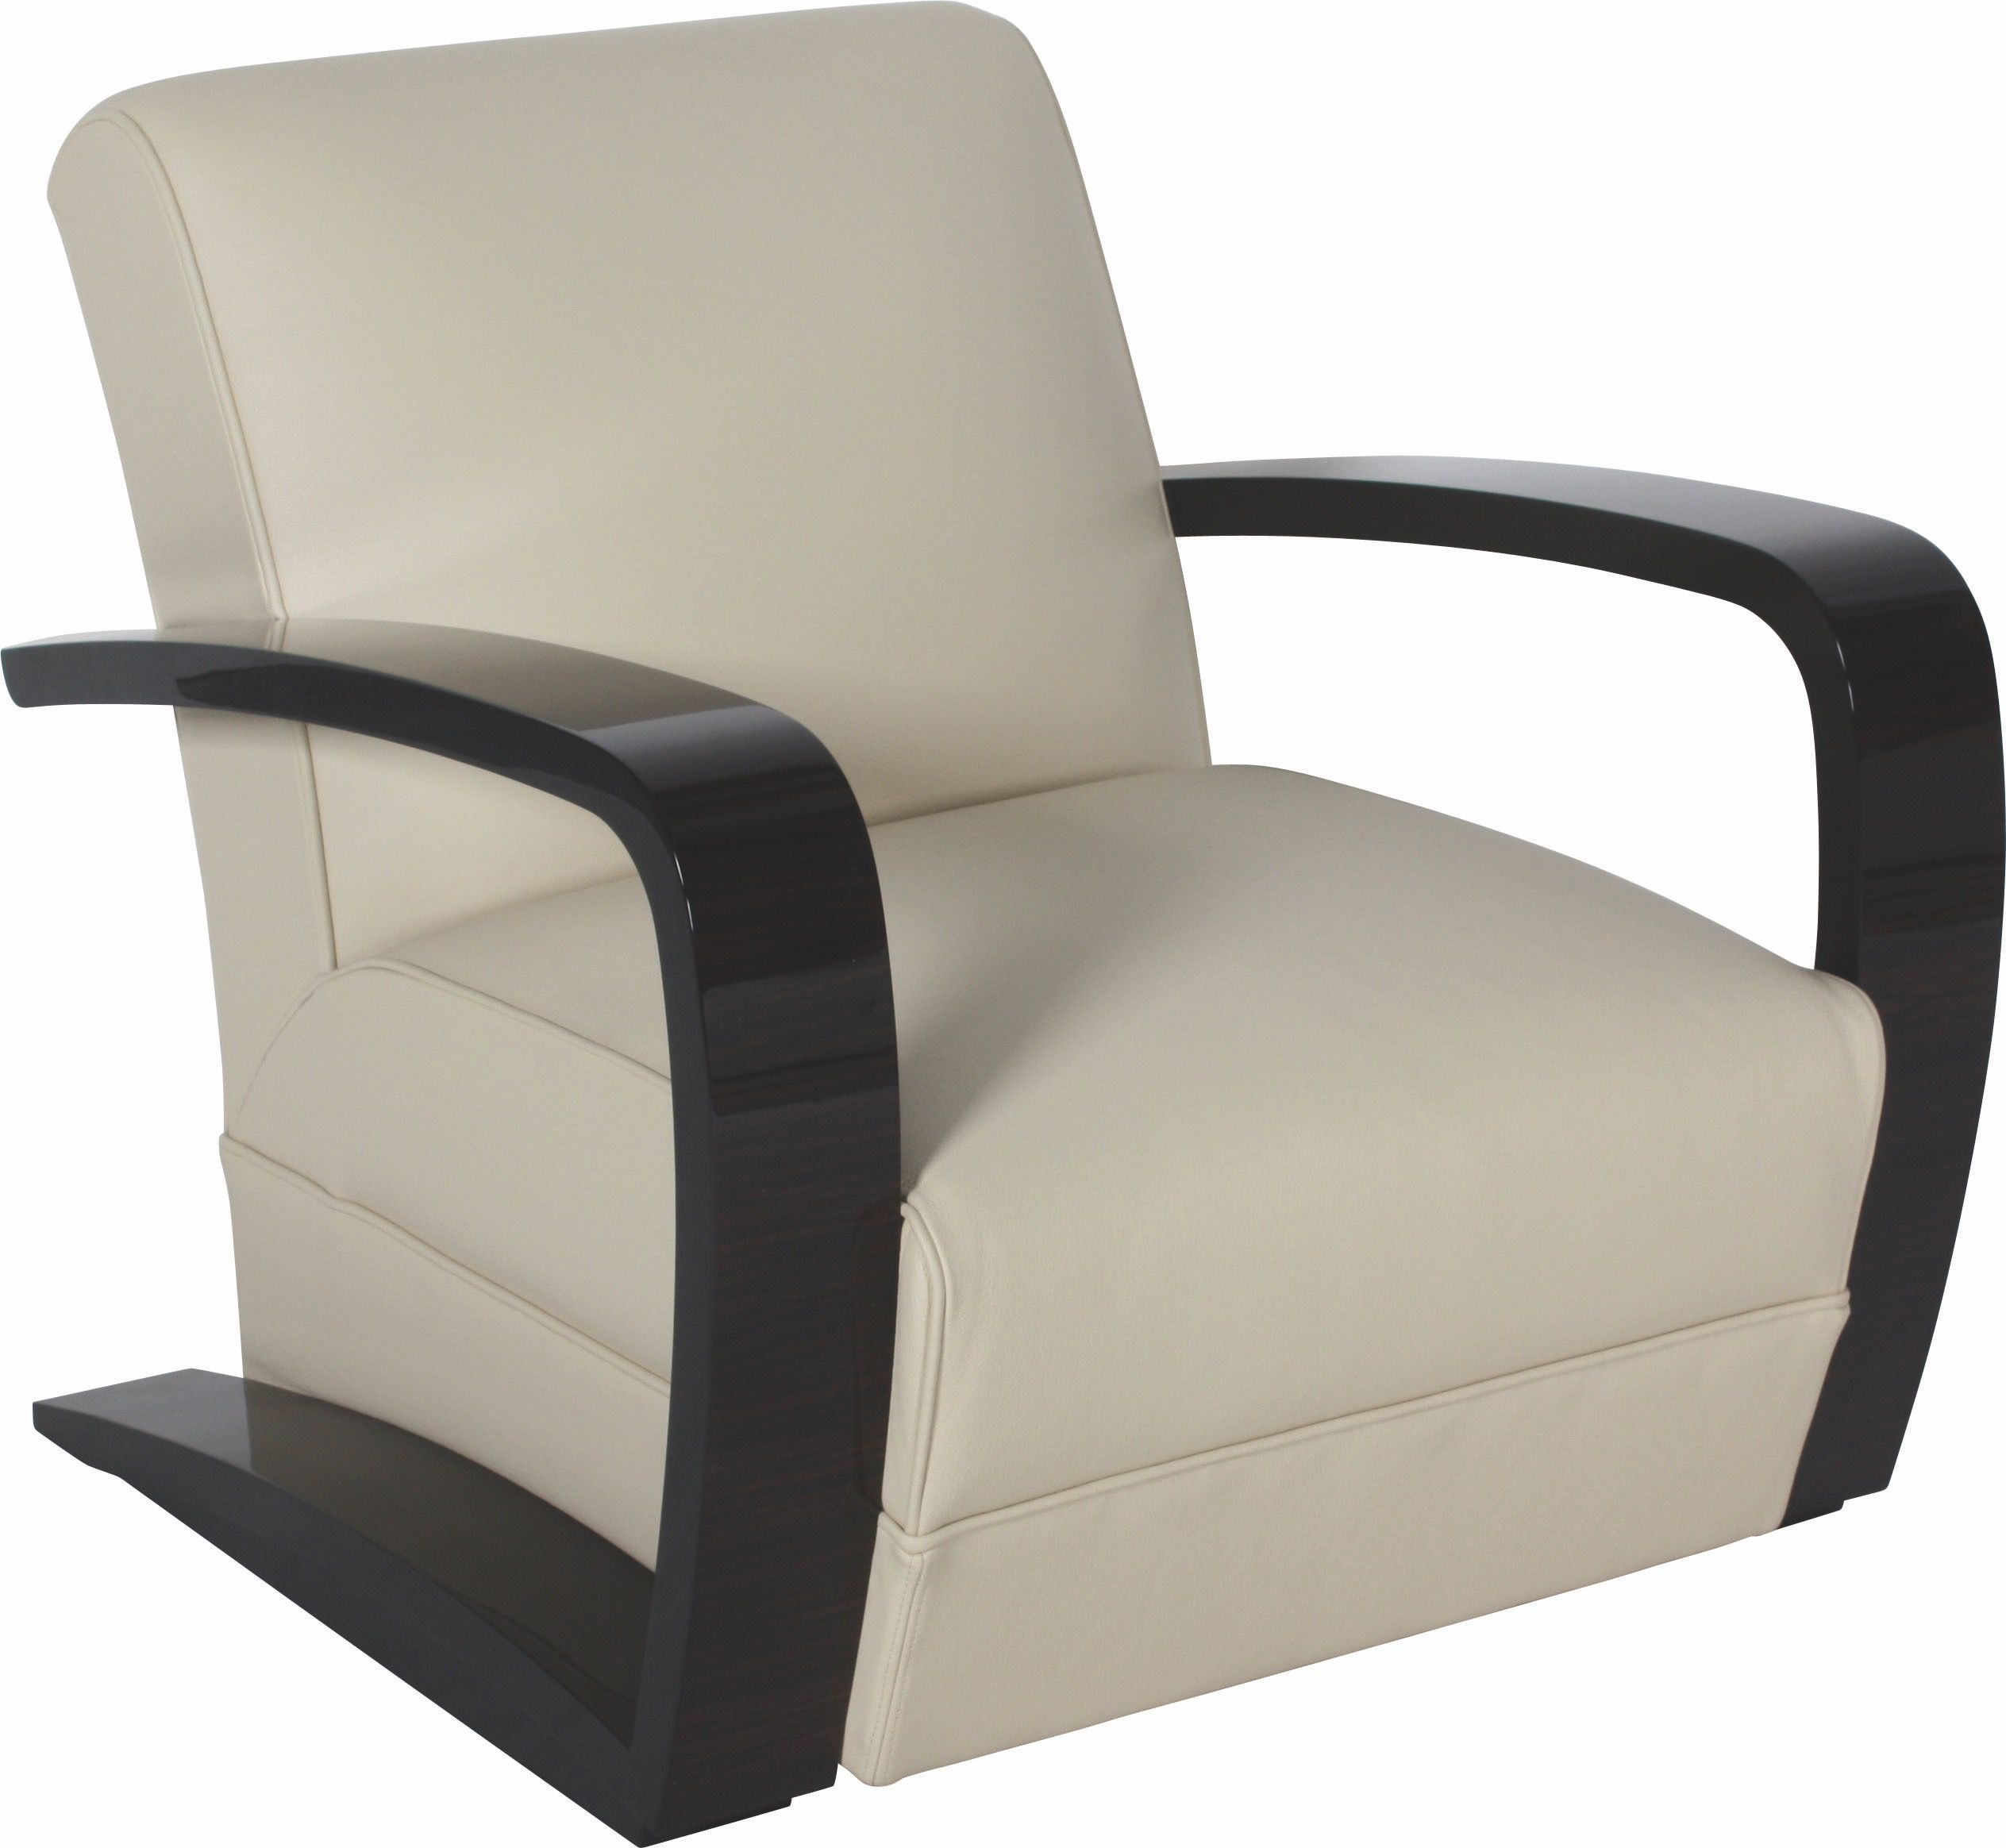 Art Deco Lounge Chair S023  Transitional Mid Century Modern Armchairs